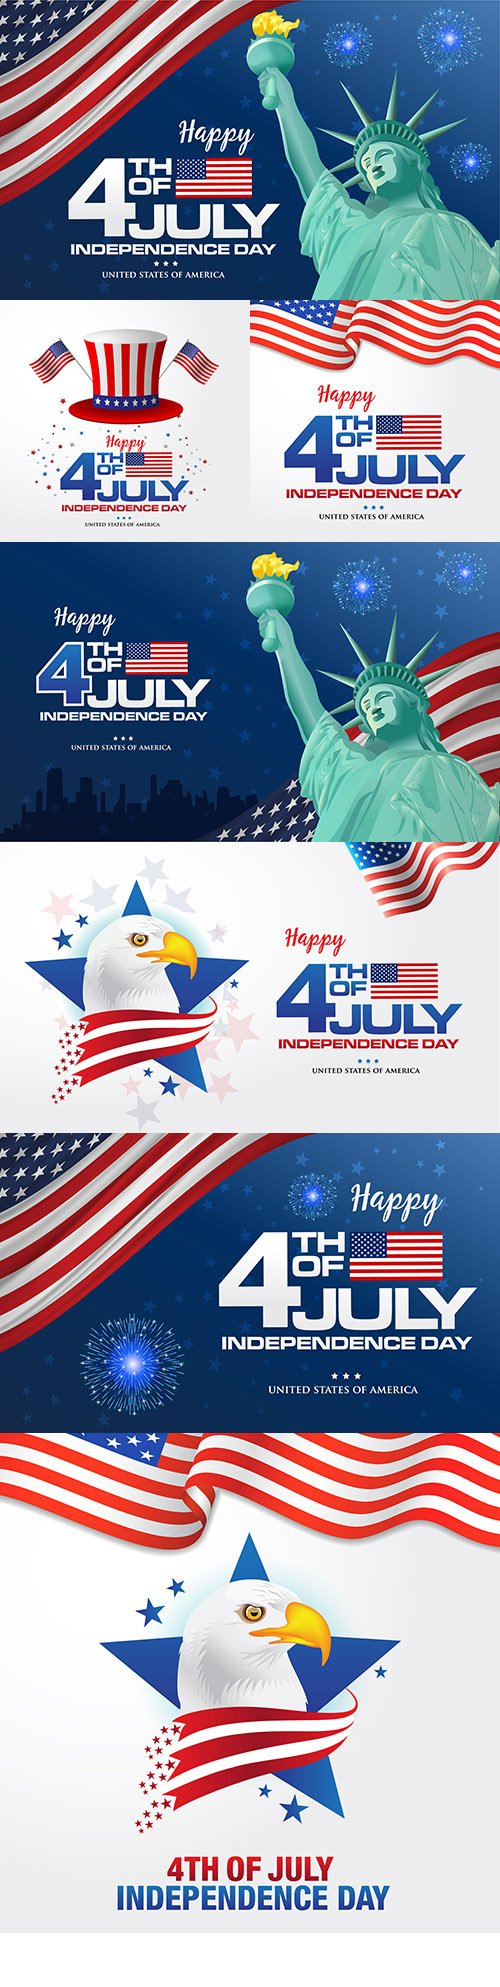 July 4 Independence Day America design illustrations 6